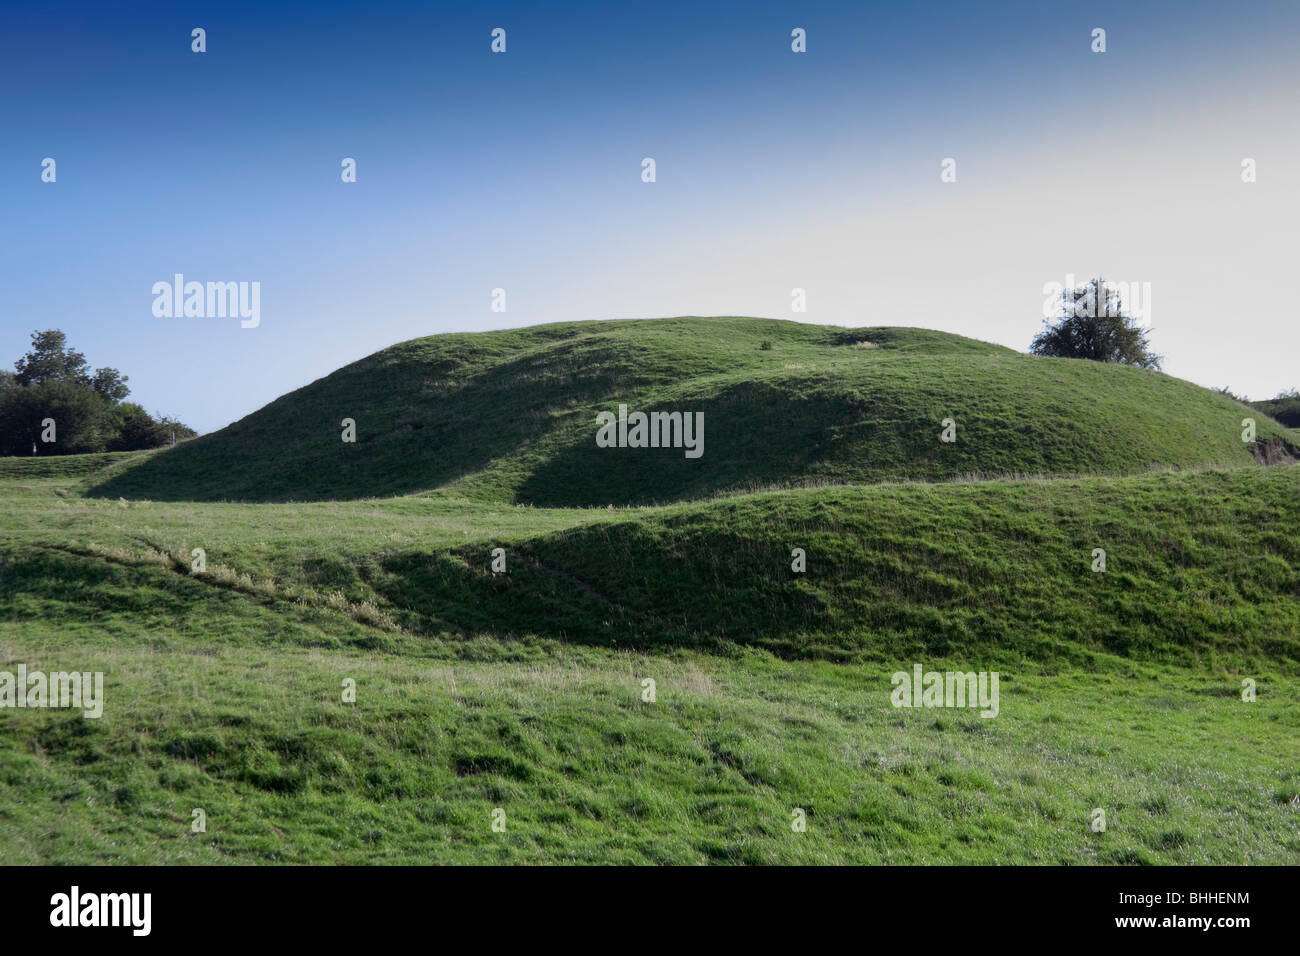 motte and bailey castle yelden bedfordshire home counties england uk europe - Stock Image